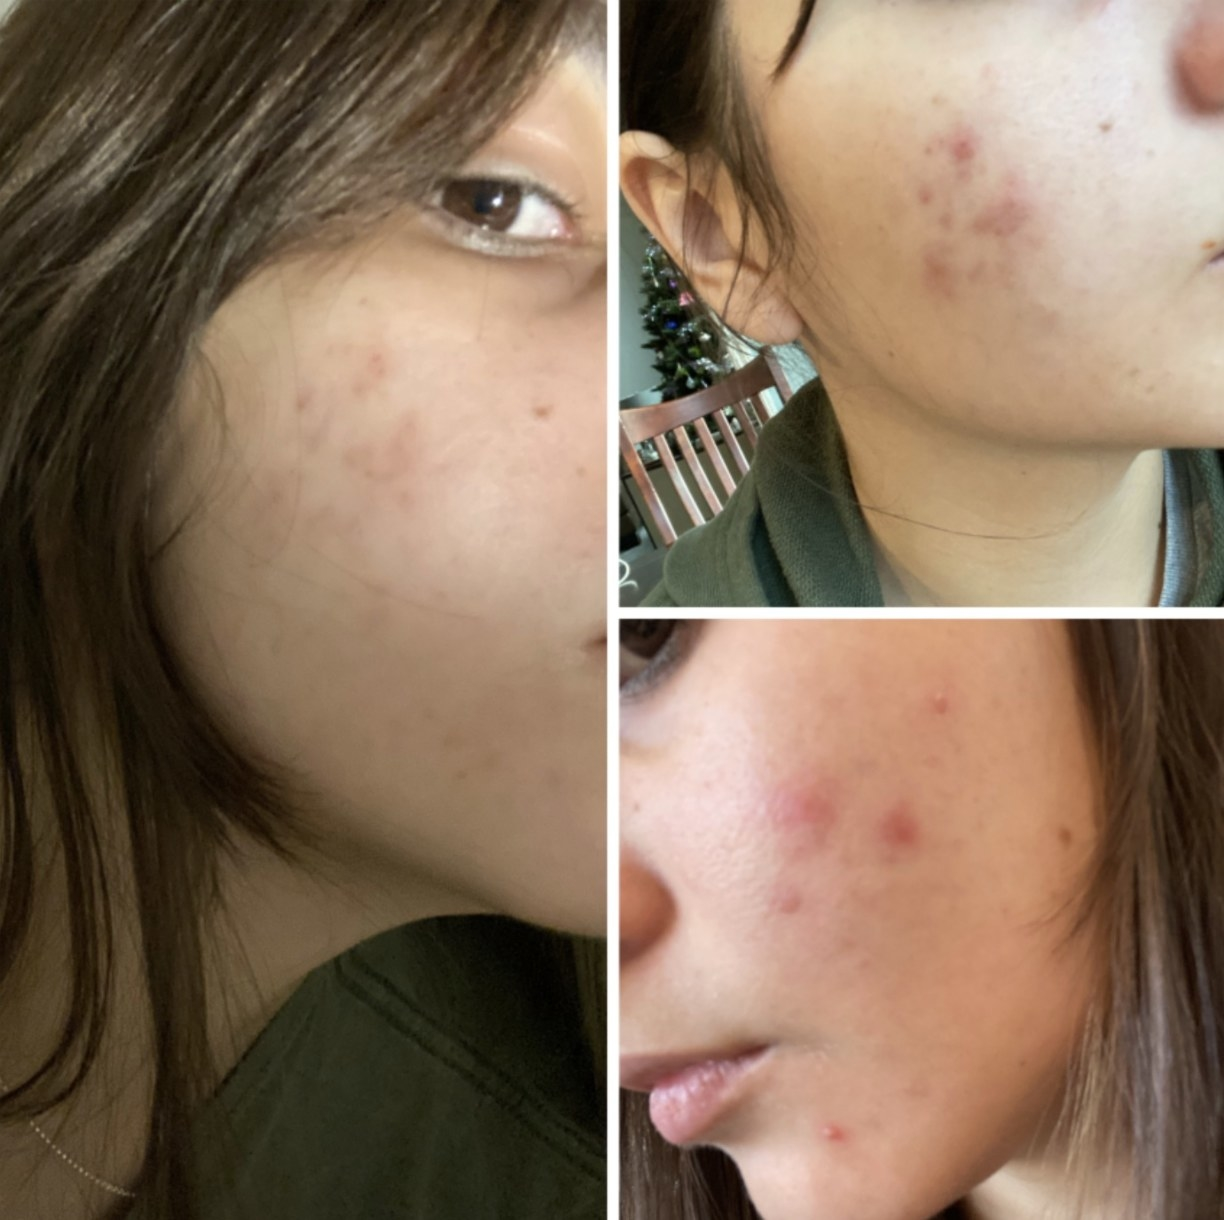 A before and after photo of a person's skin